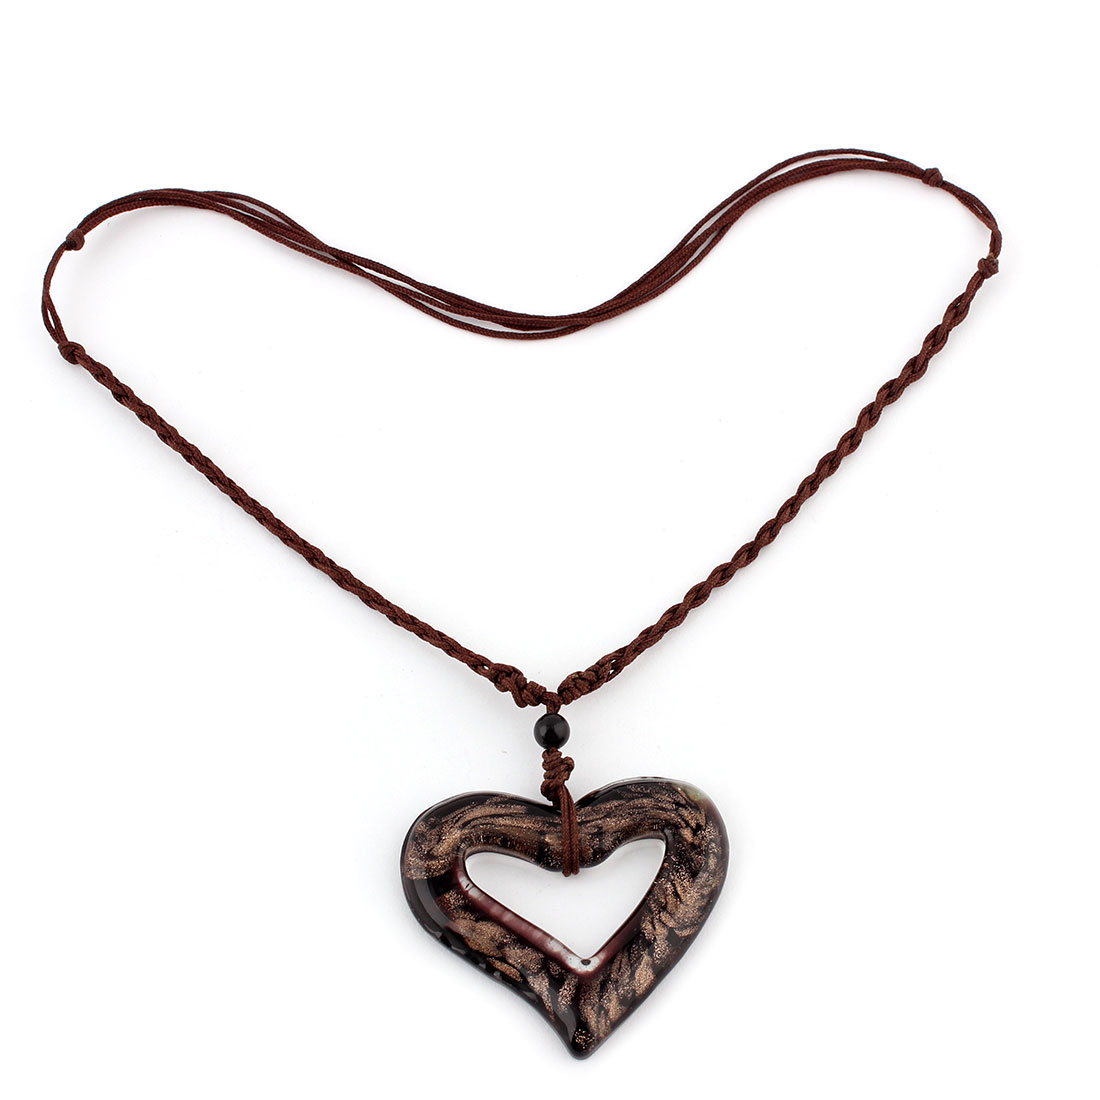 Glass Heart Shape Pendant Party Wedding Adjustable Necklace Black Brown